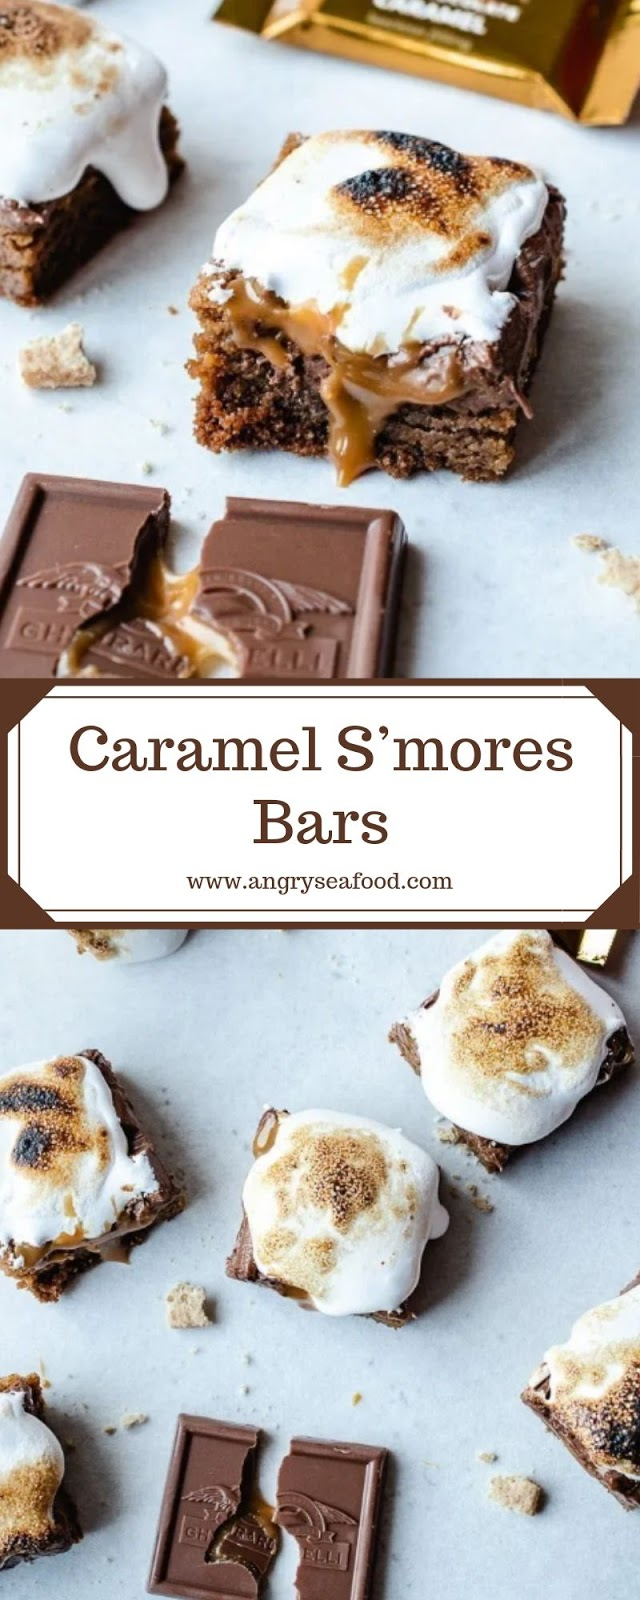 Caramel S'mores Bars